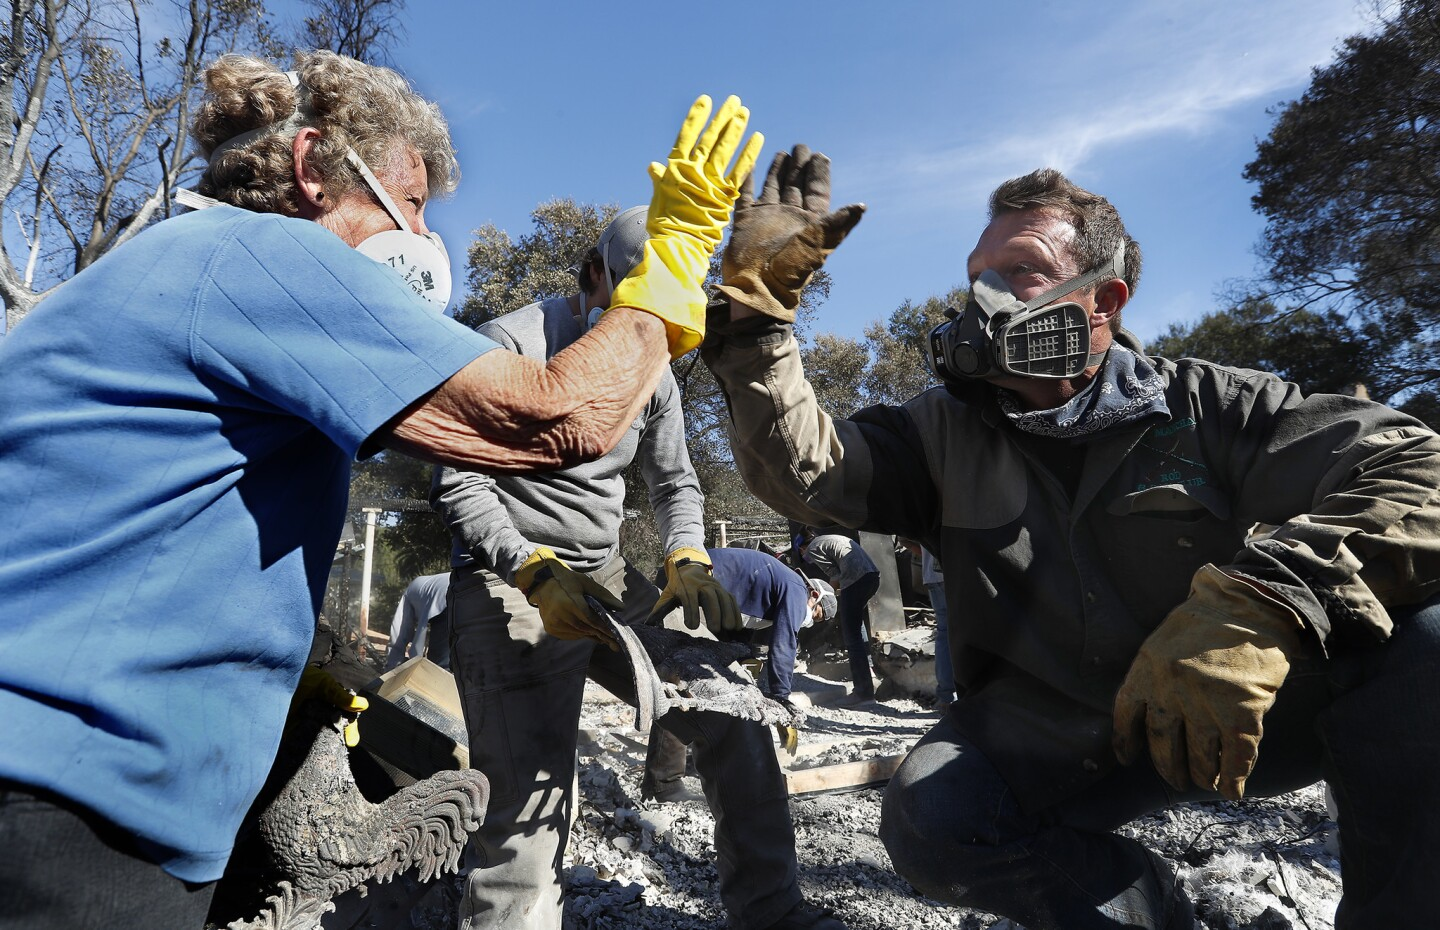 Leona Mote, left, high-fives Trevor Quirk as a team of volunteers helps sift through the rubble of her home near Ojai that burnt to the ground in the Thomas fire. Among the items recovered were her husband's wedding band, jewelry and part of a coin collection.